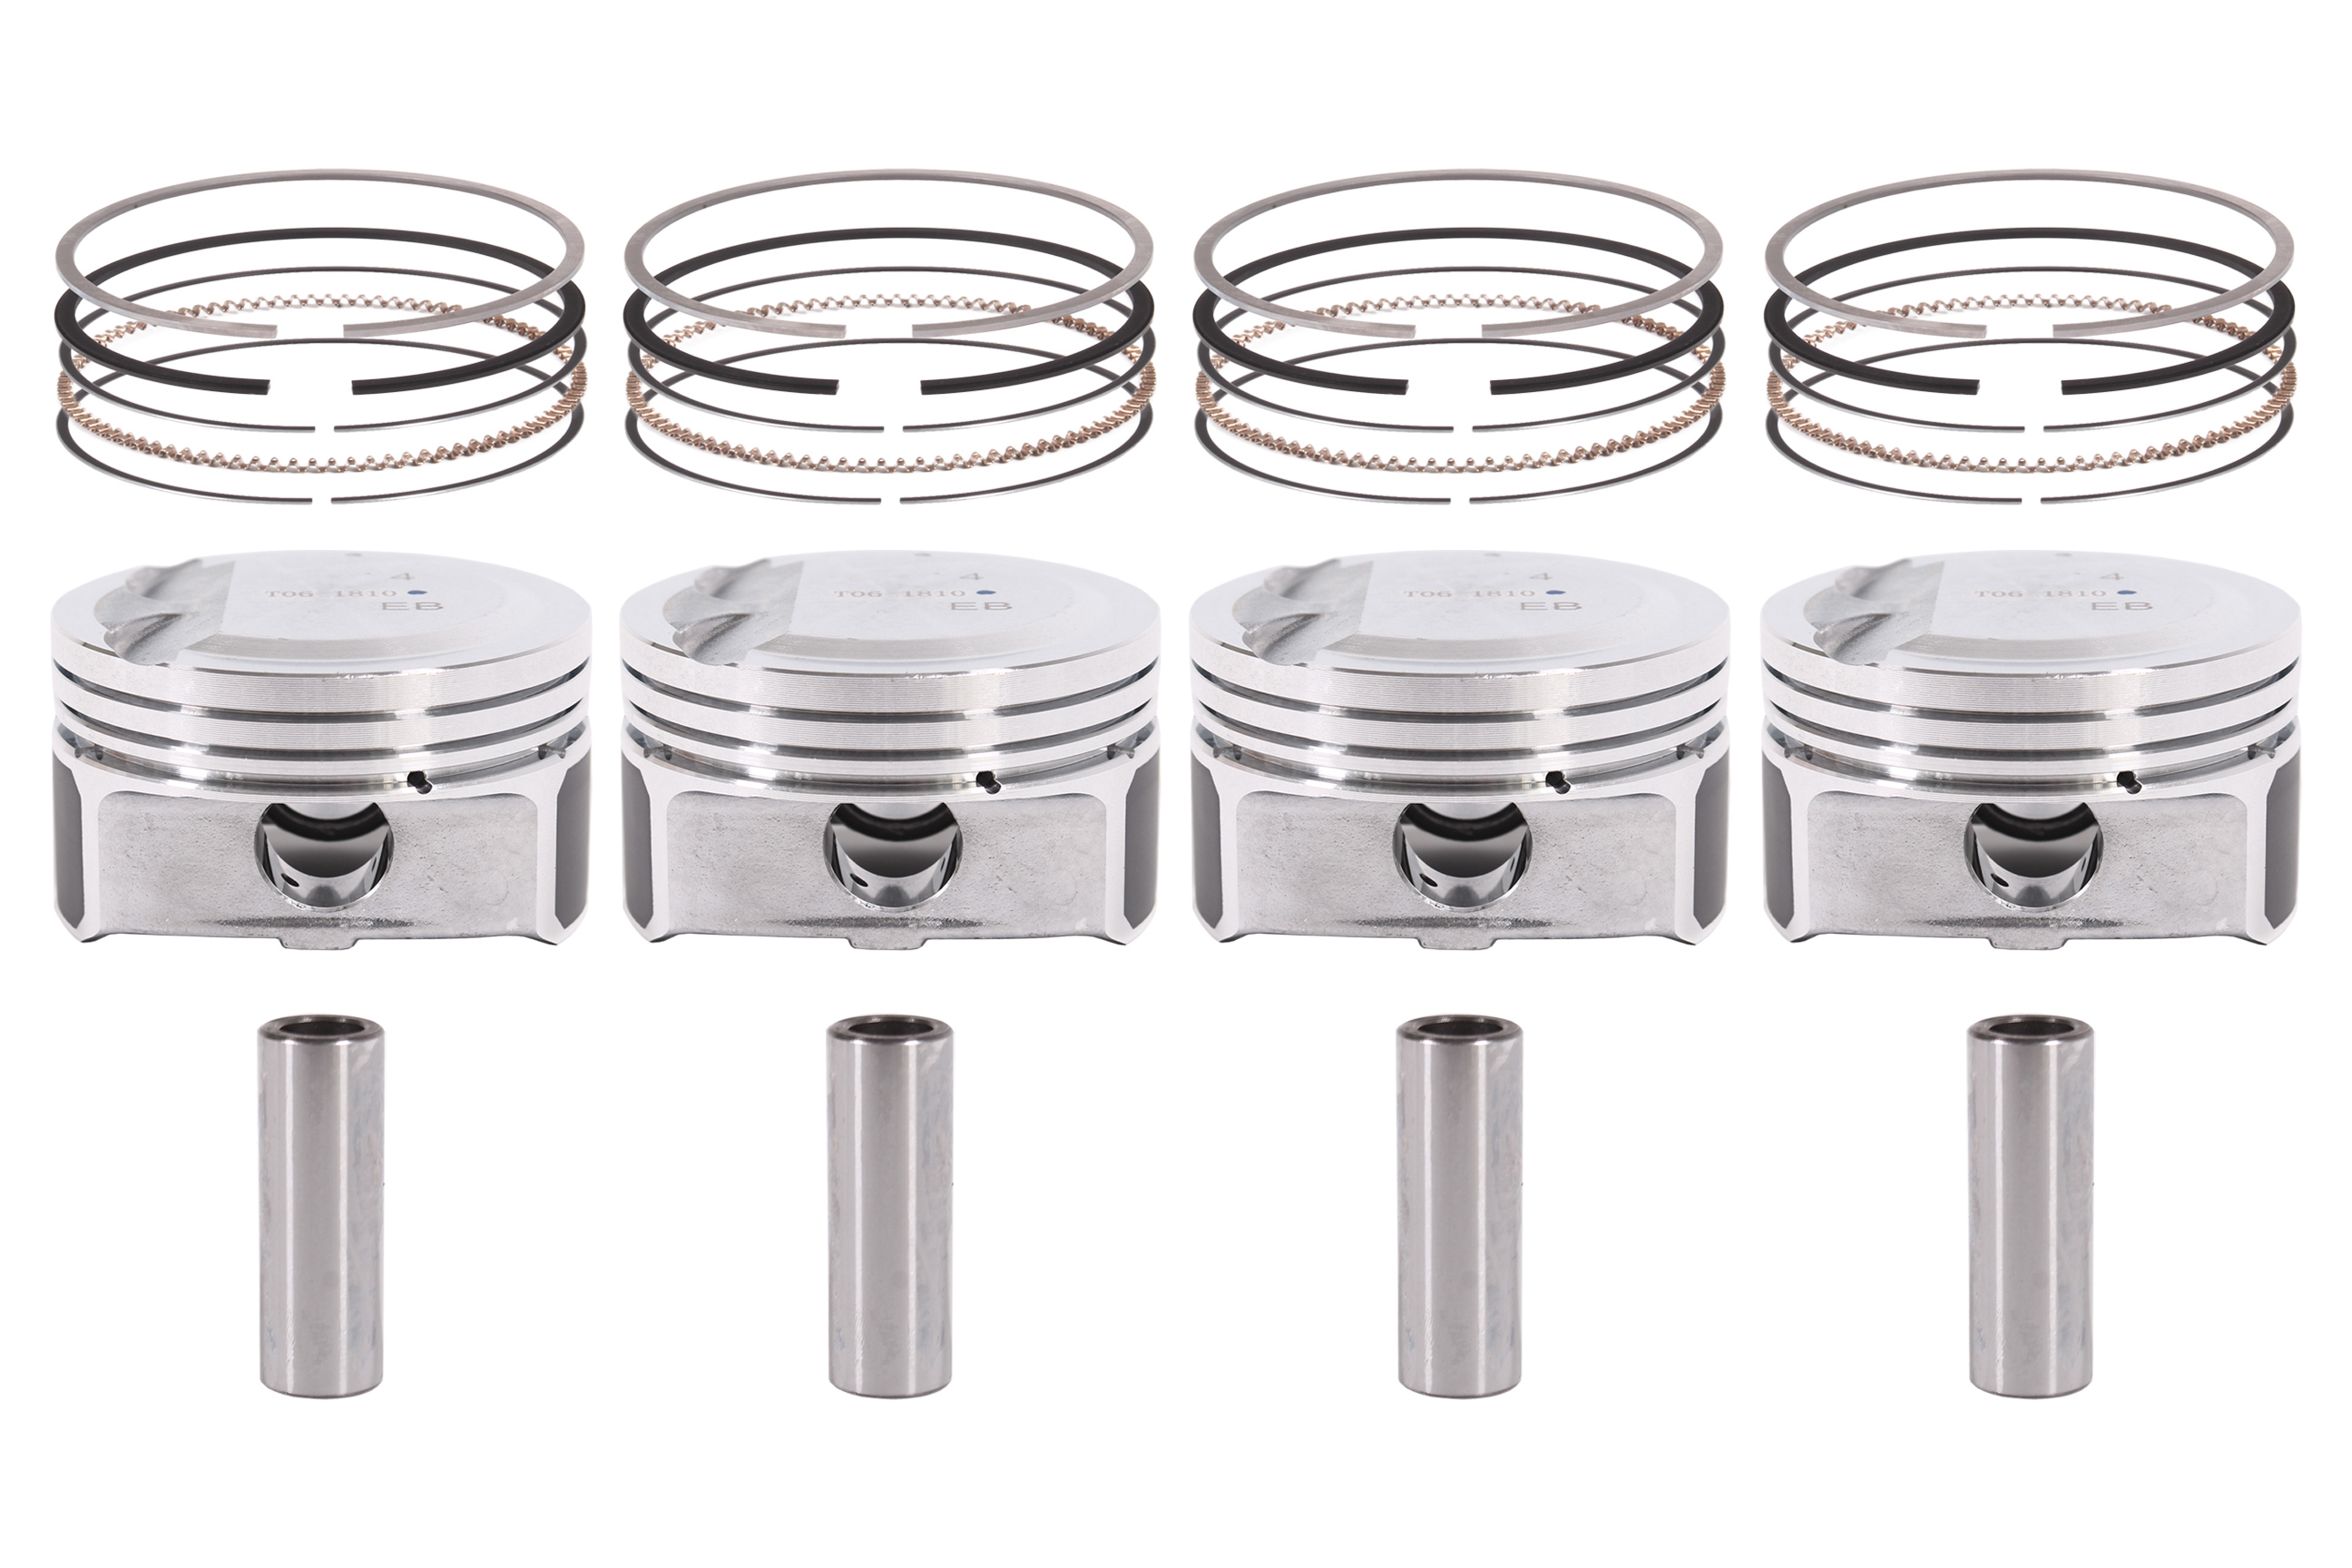 4x Piston set Hyundai IV i20 i30 CW ix20 Ceed Rio is 1.4 CVVT G4FA NEW DE250771